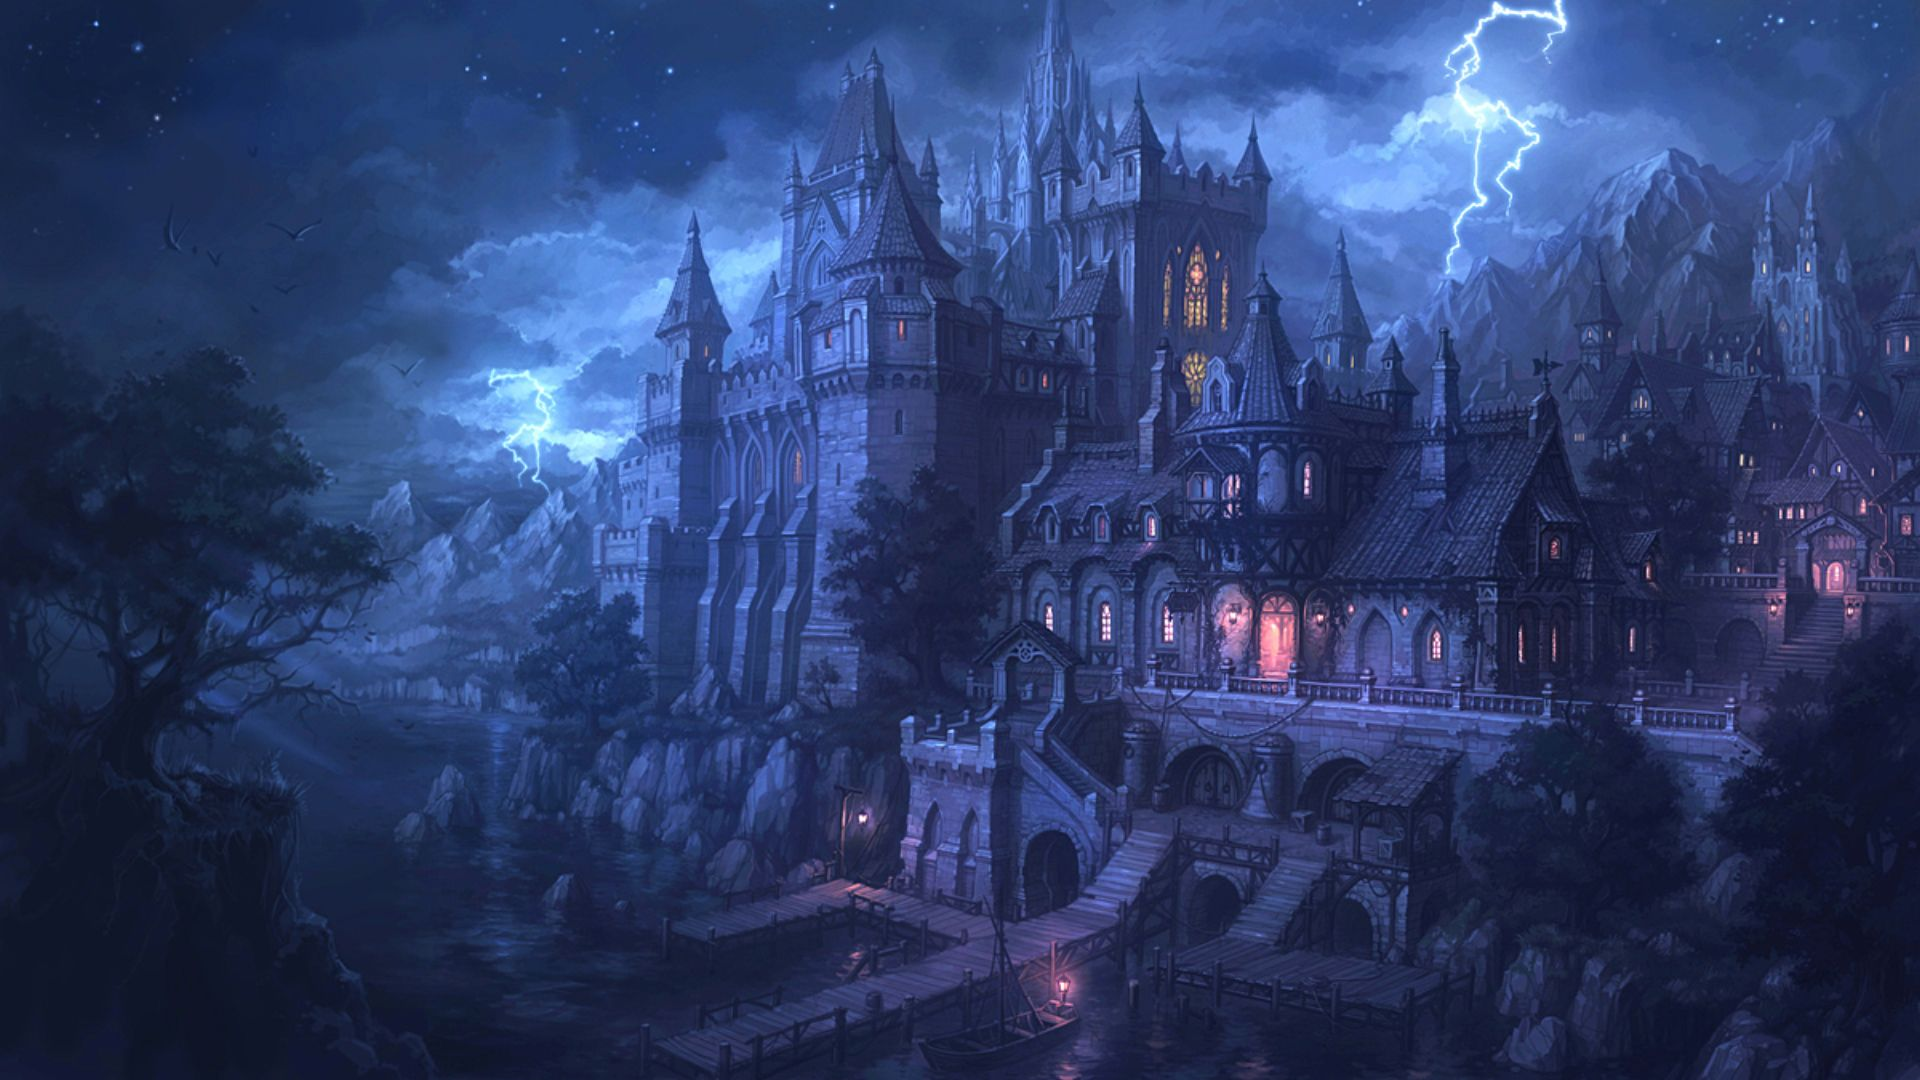 castle wallpapers, pictures, images